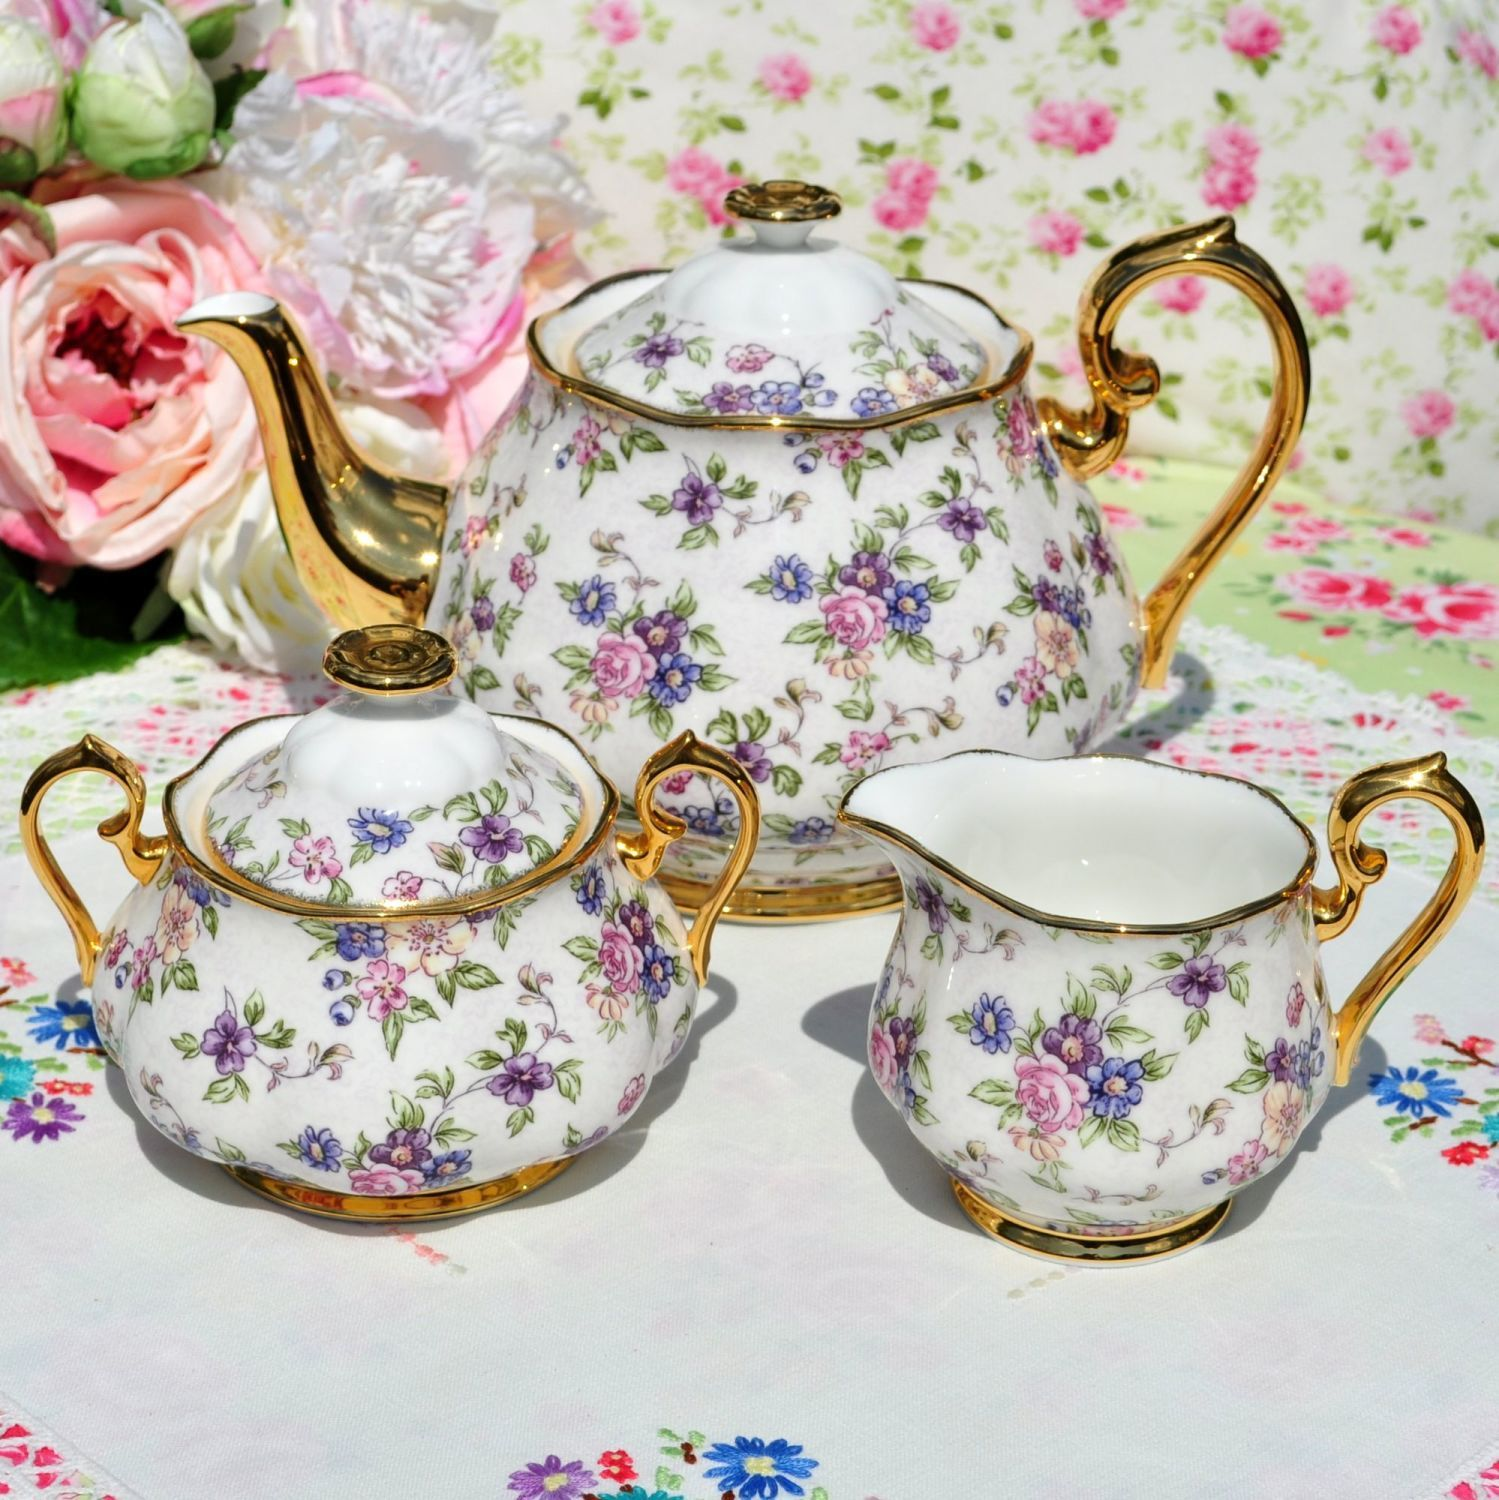 Royal Albert 1940's English Chintz Teapot Teaset #teasets